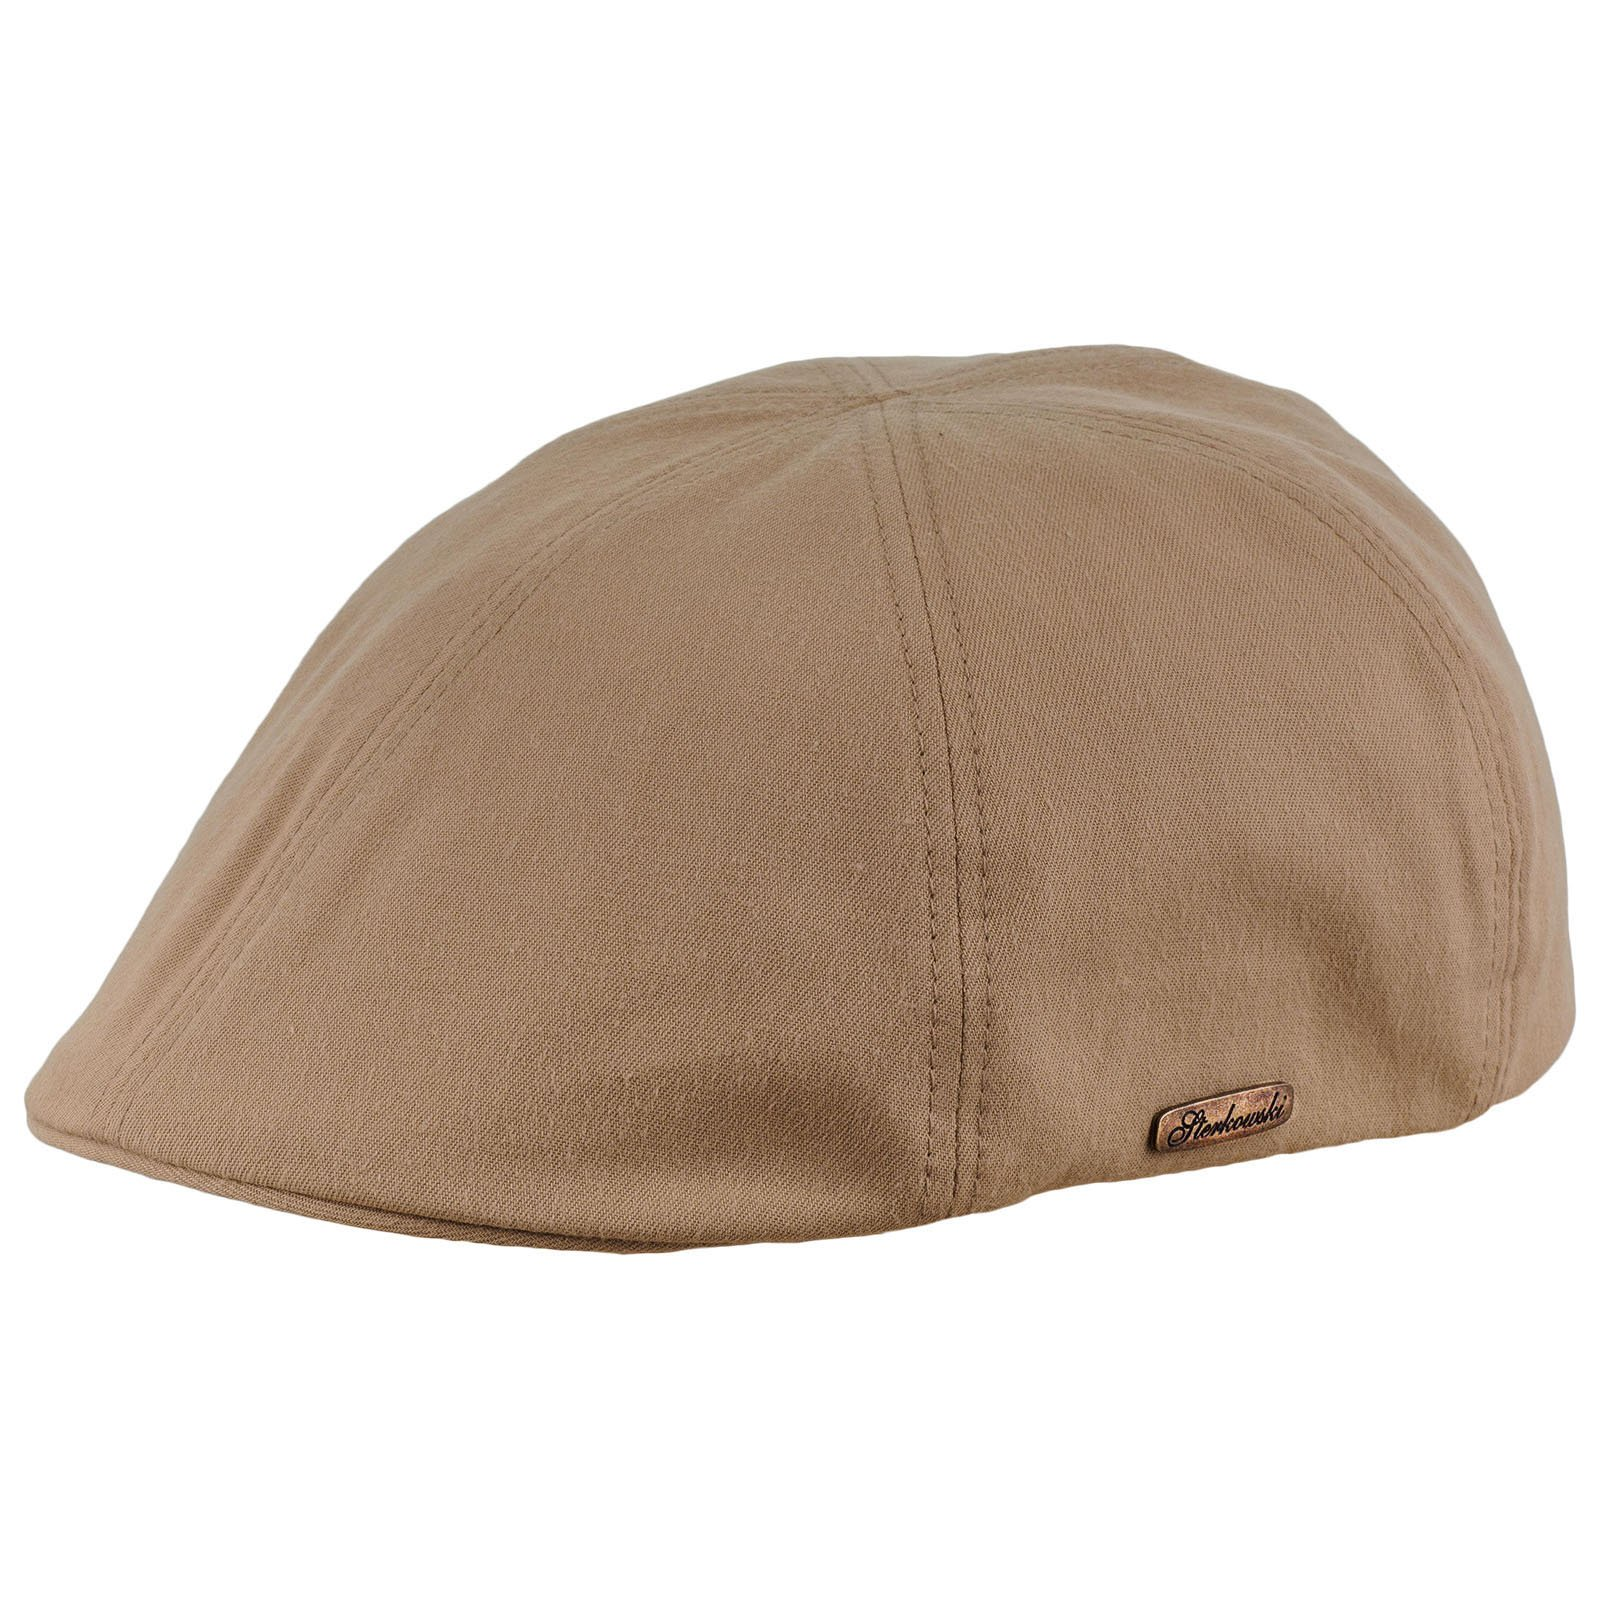 Sterkowski Light Breathable Emerizing Cotton 6 Panel Duckbill Flat Cap, Beige - 58cm = L = US 7 1/4 by Sterkowski (Image #2)